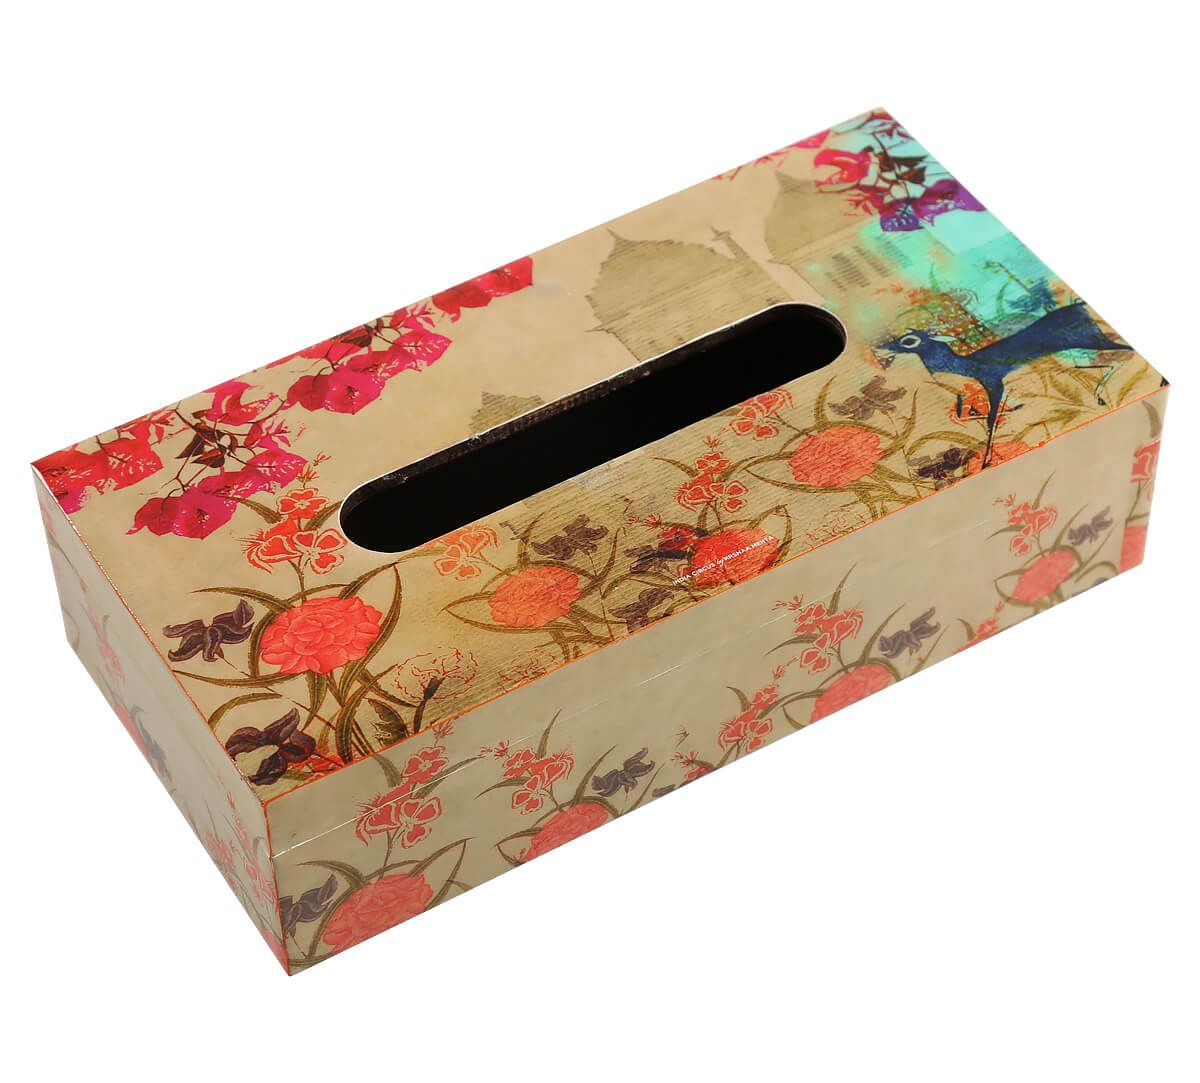 India Circus Palaces in Paradise Tissue Box Holder